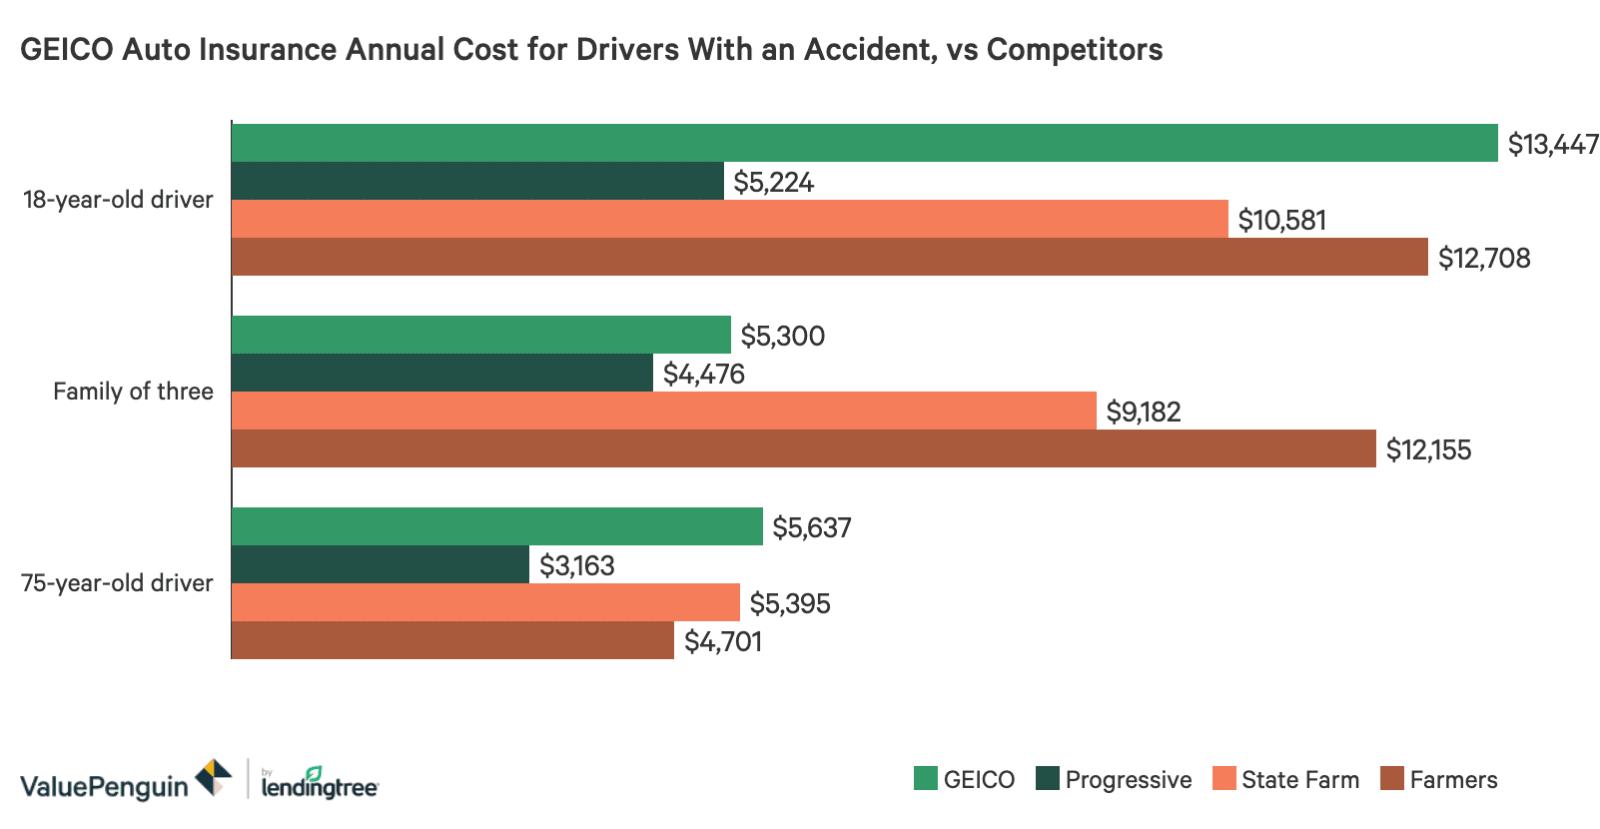 GEICO Rates for Drivers With Accidents Comparison